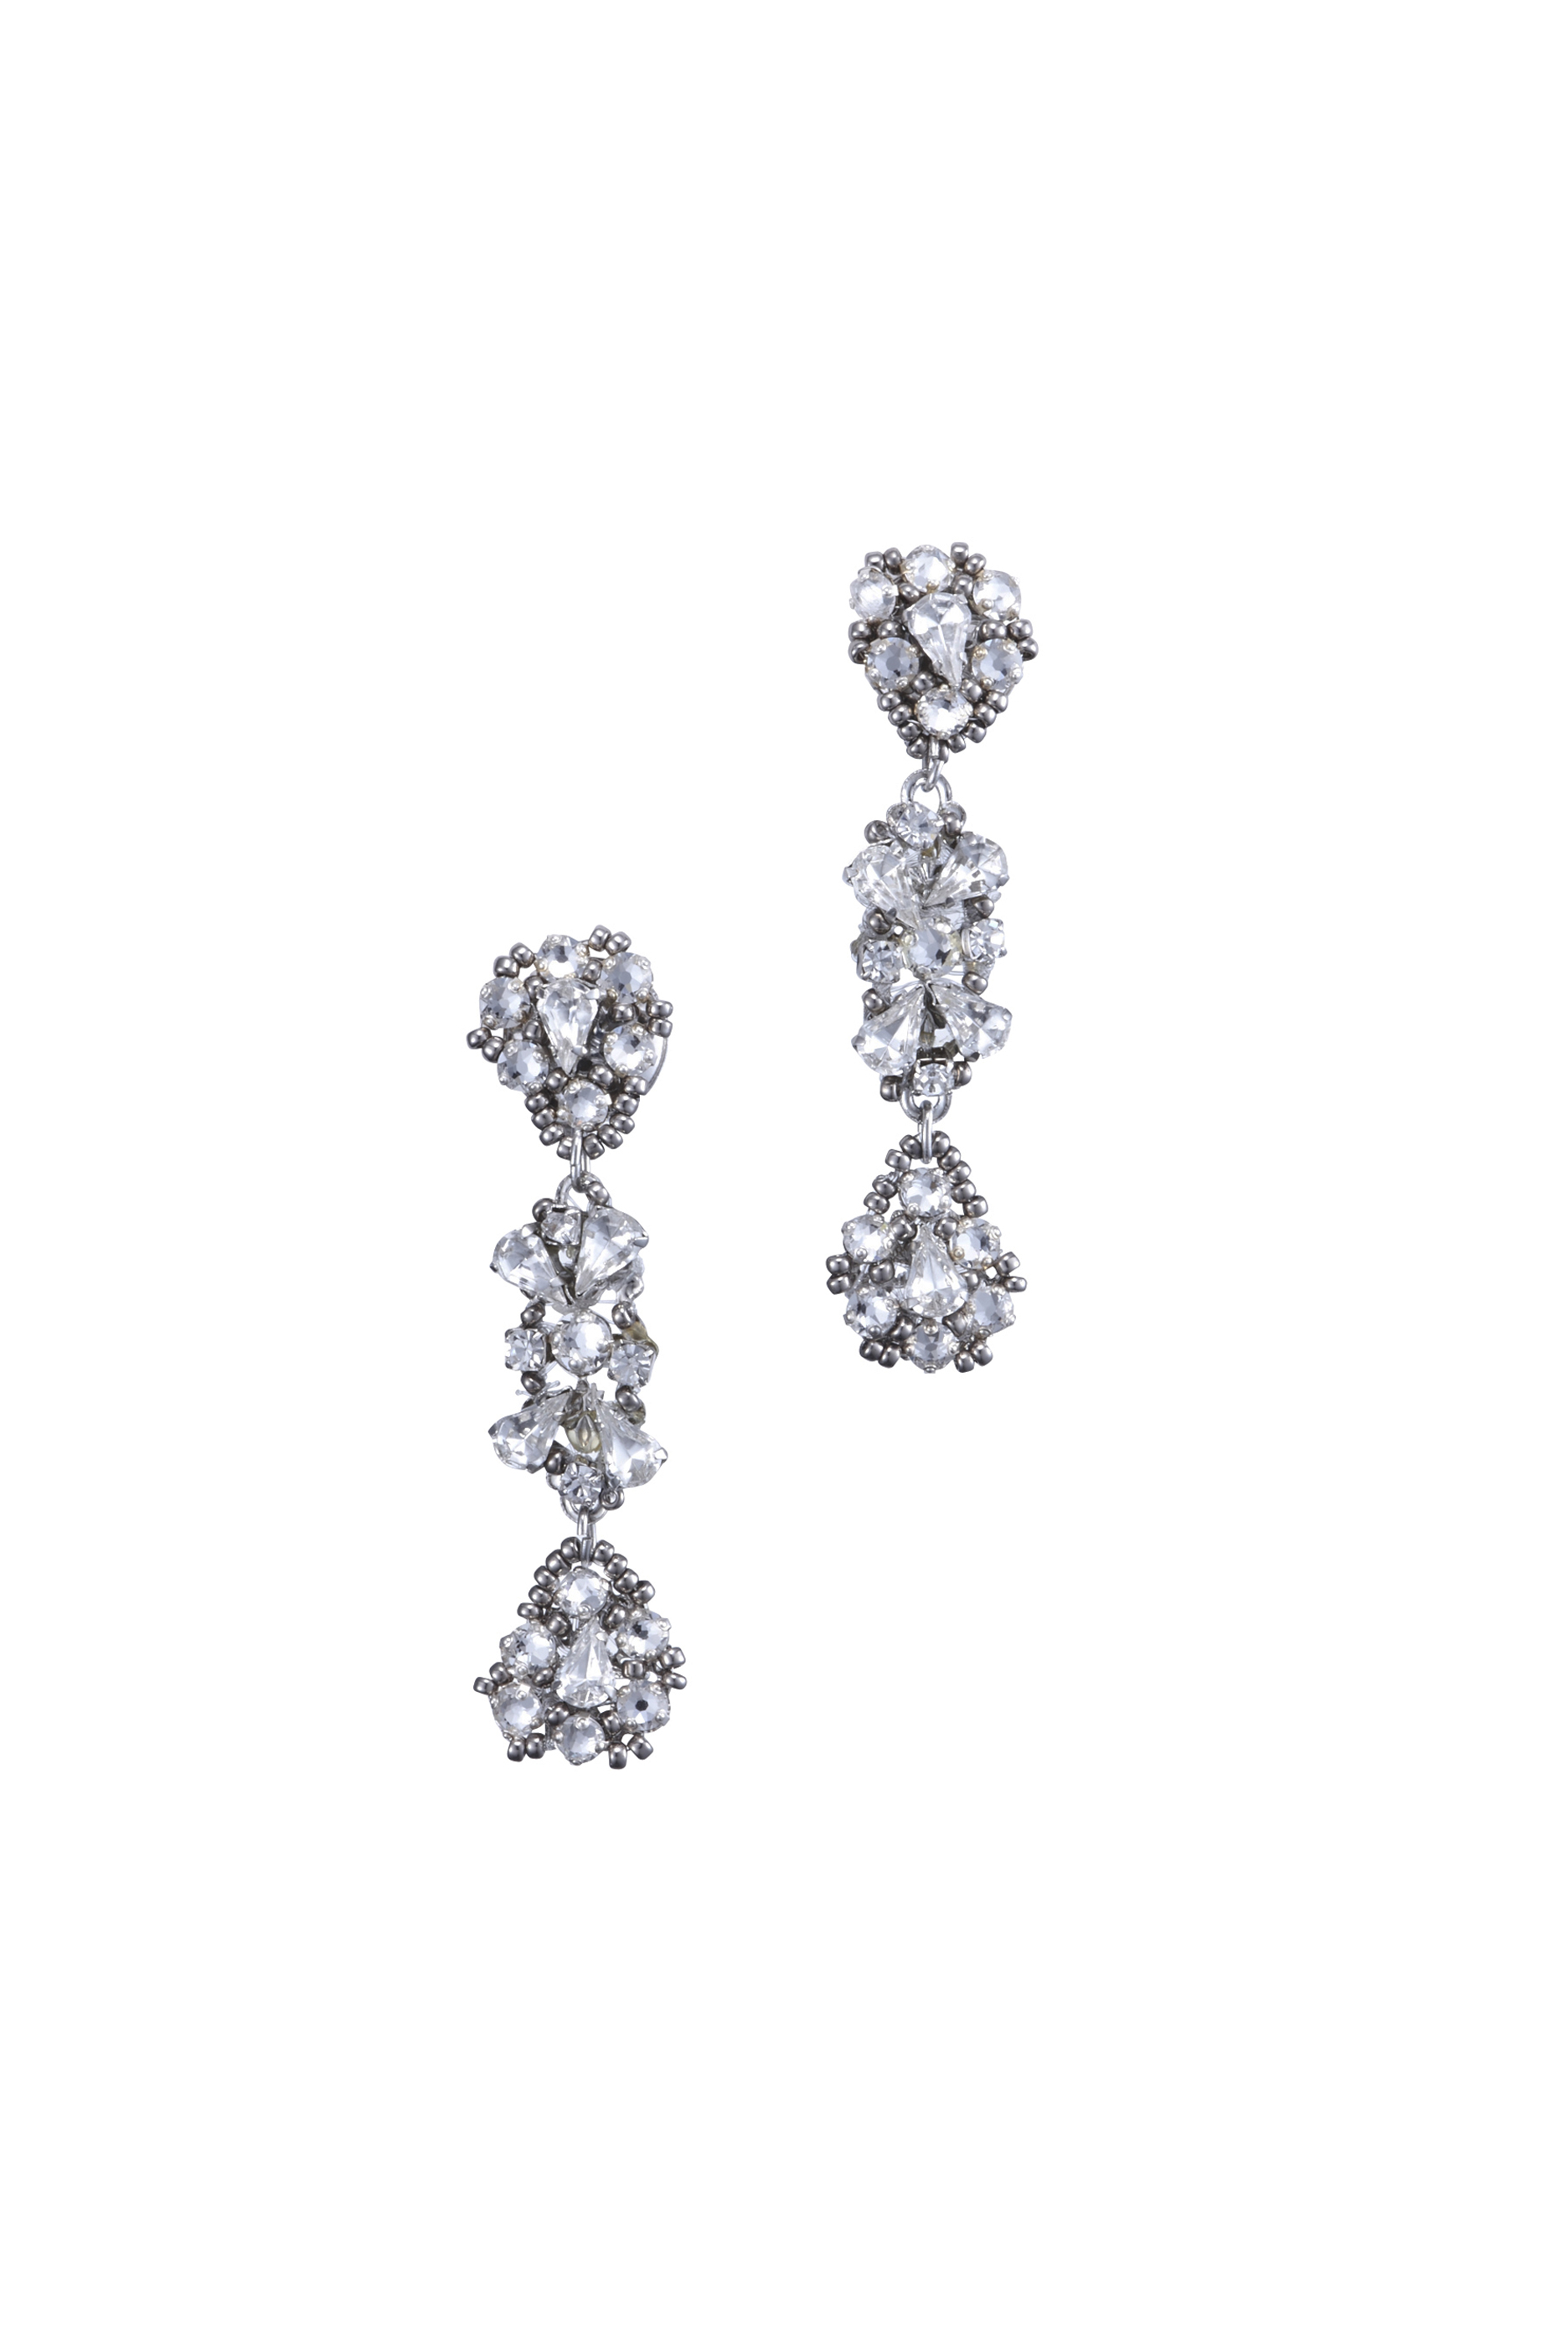 [RENTAL][LILI EARRING]by orgablanca(参考価格¥16,200)